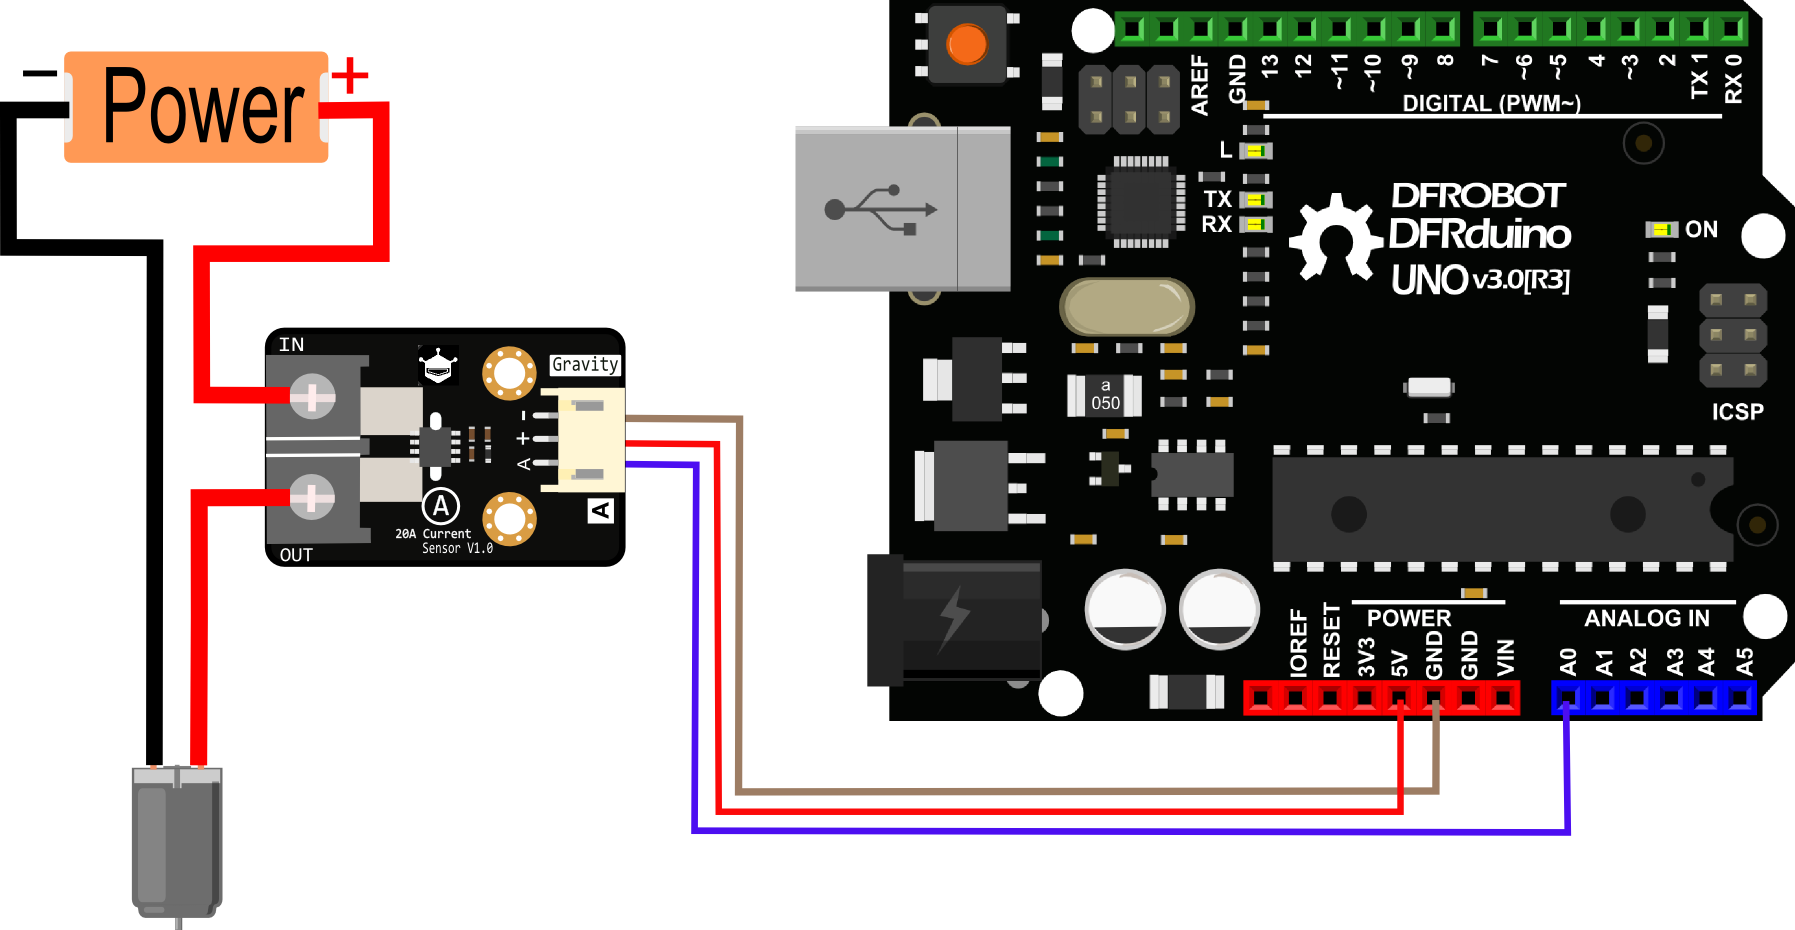 Gravity: Analog 20A Current Sensor wiki- DFRobot